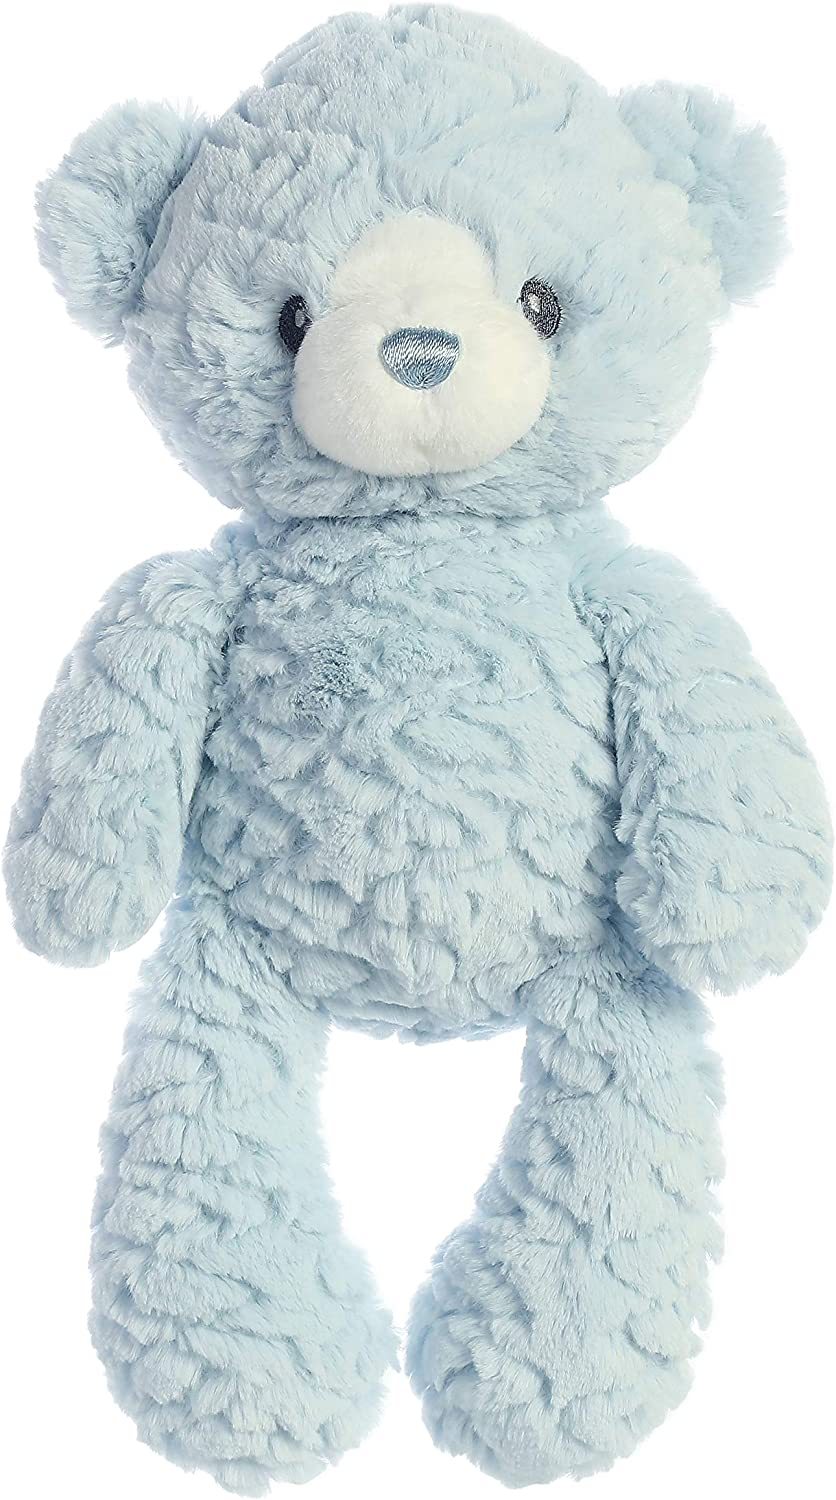 All items free shipping Ebba - Huggy Bear New product!! 13